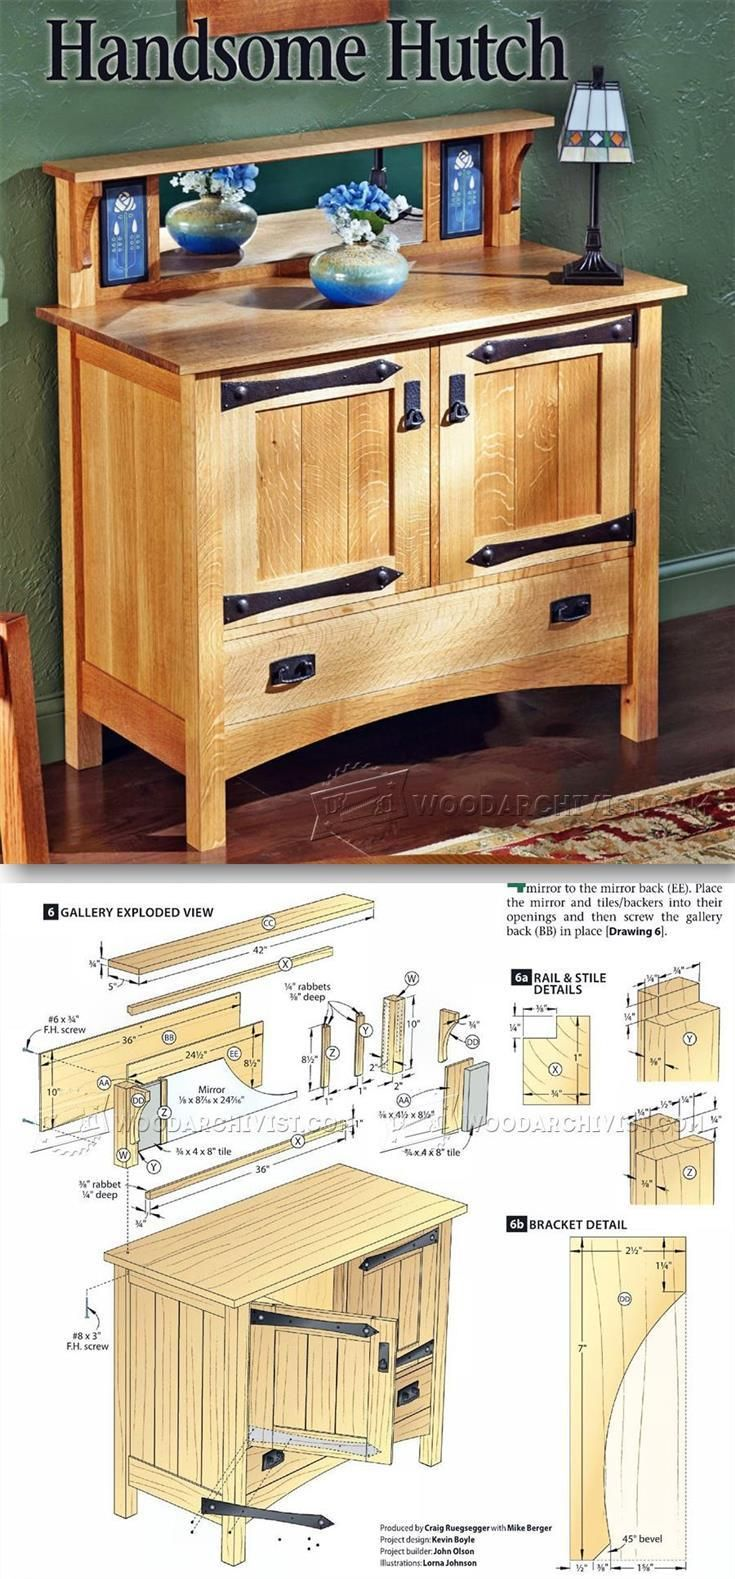 Mission Hutch Plans - Furniture Plans and Projects | WoodArchivist.com